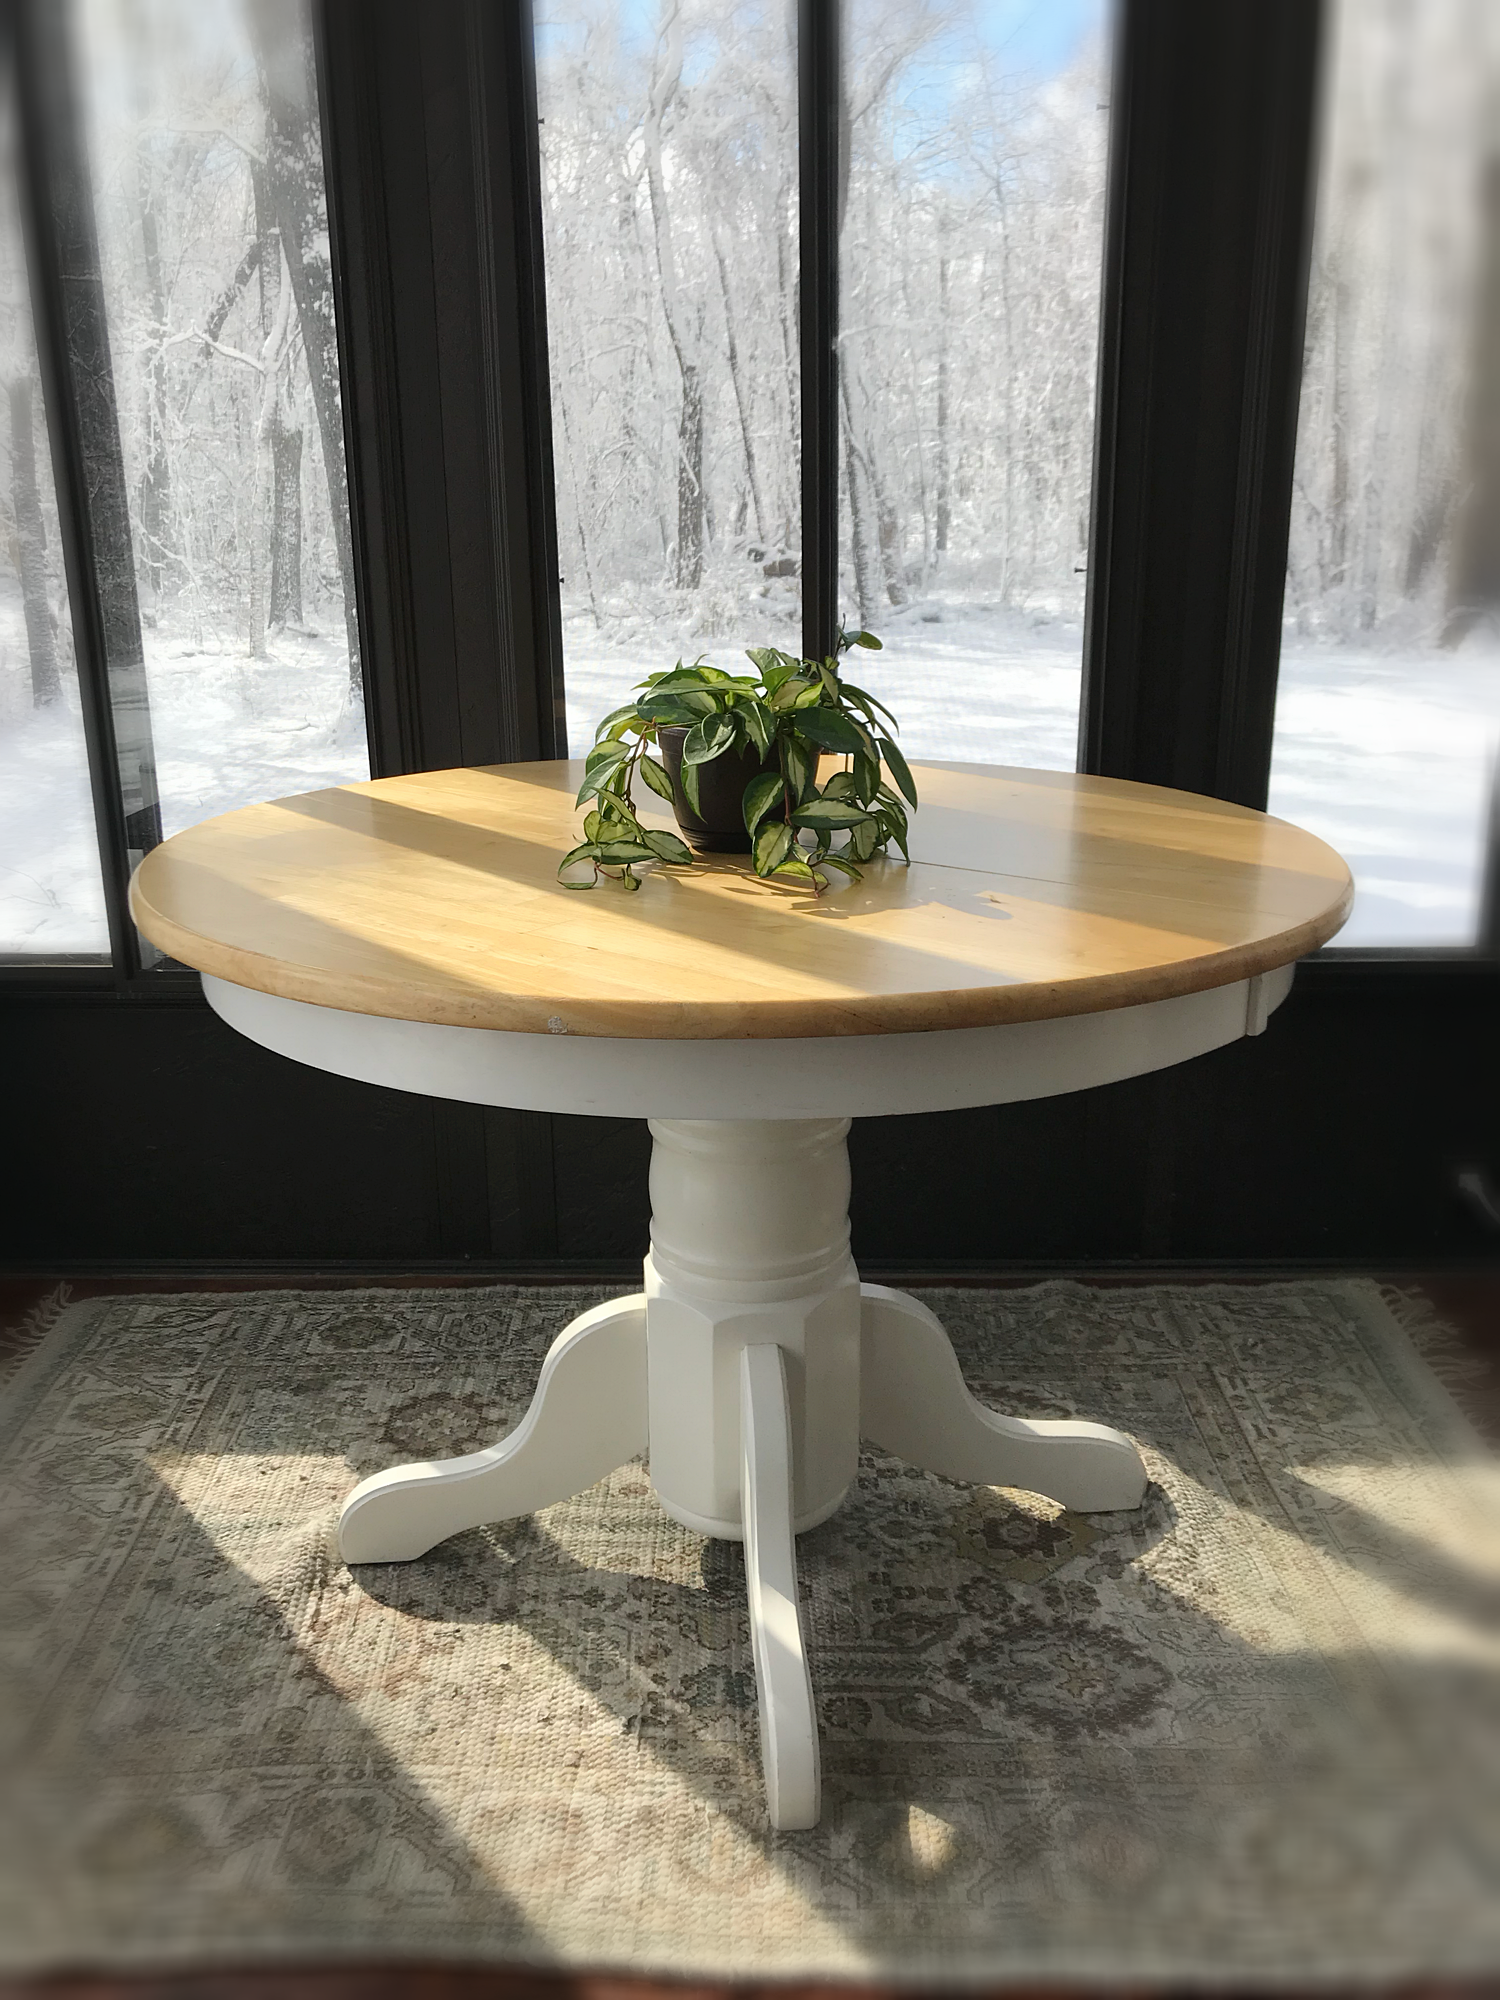 vintage wooden accent table rustic entryway farmhouse kitchen country furniture console expandable round kmart bedside hairpin leg dining plans marble top foyer pool small corner